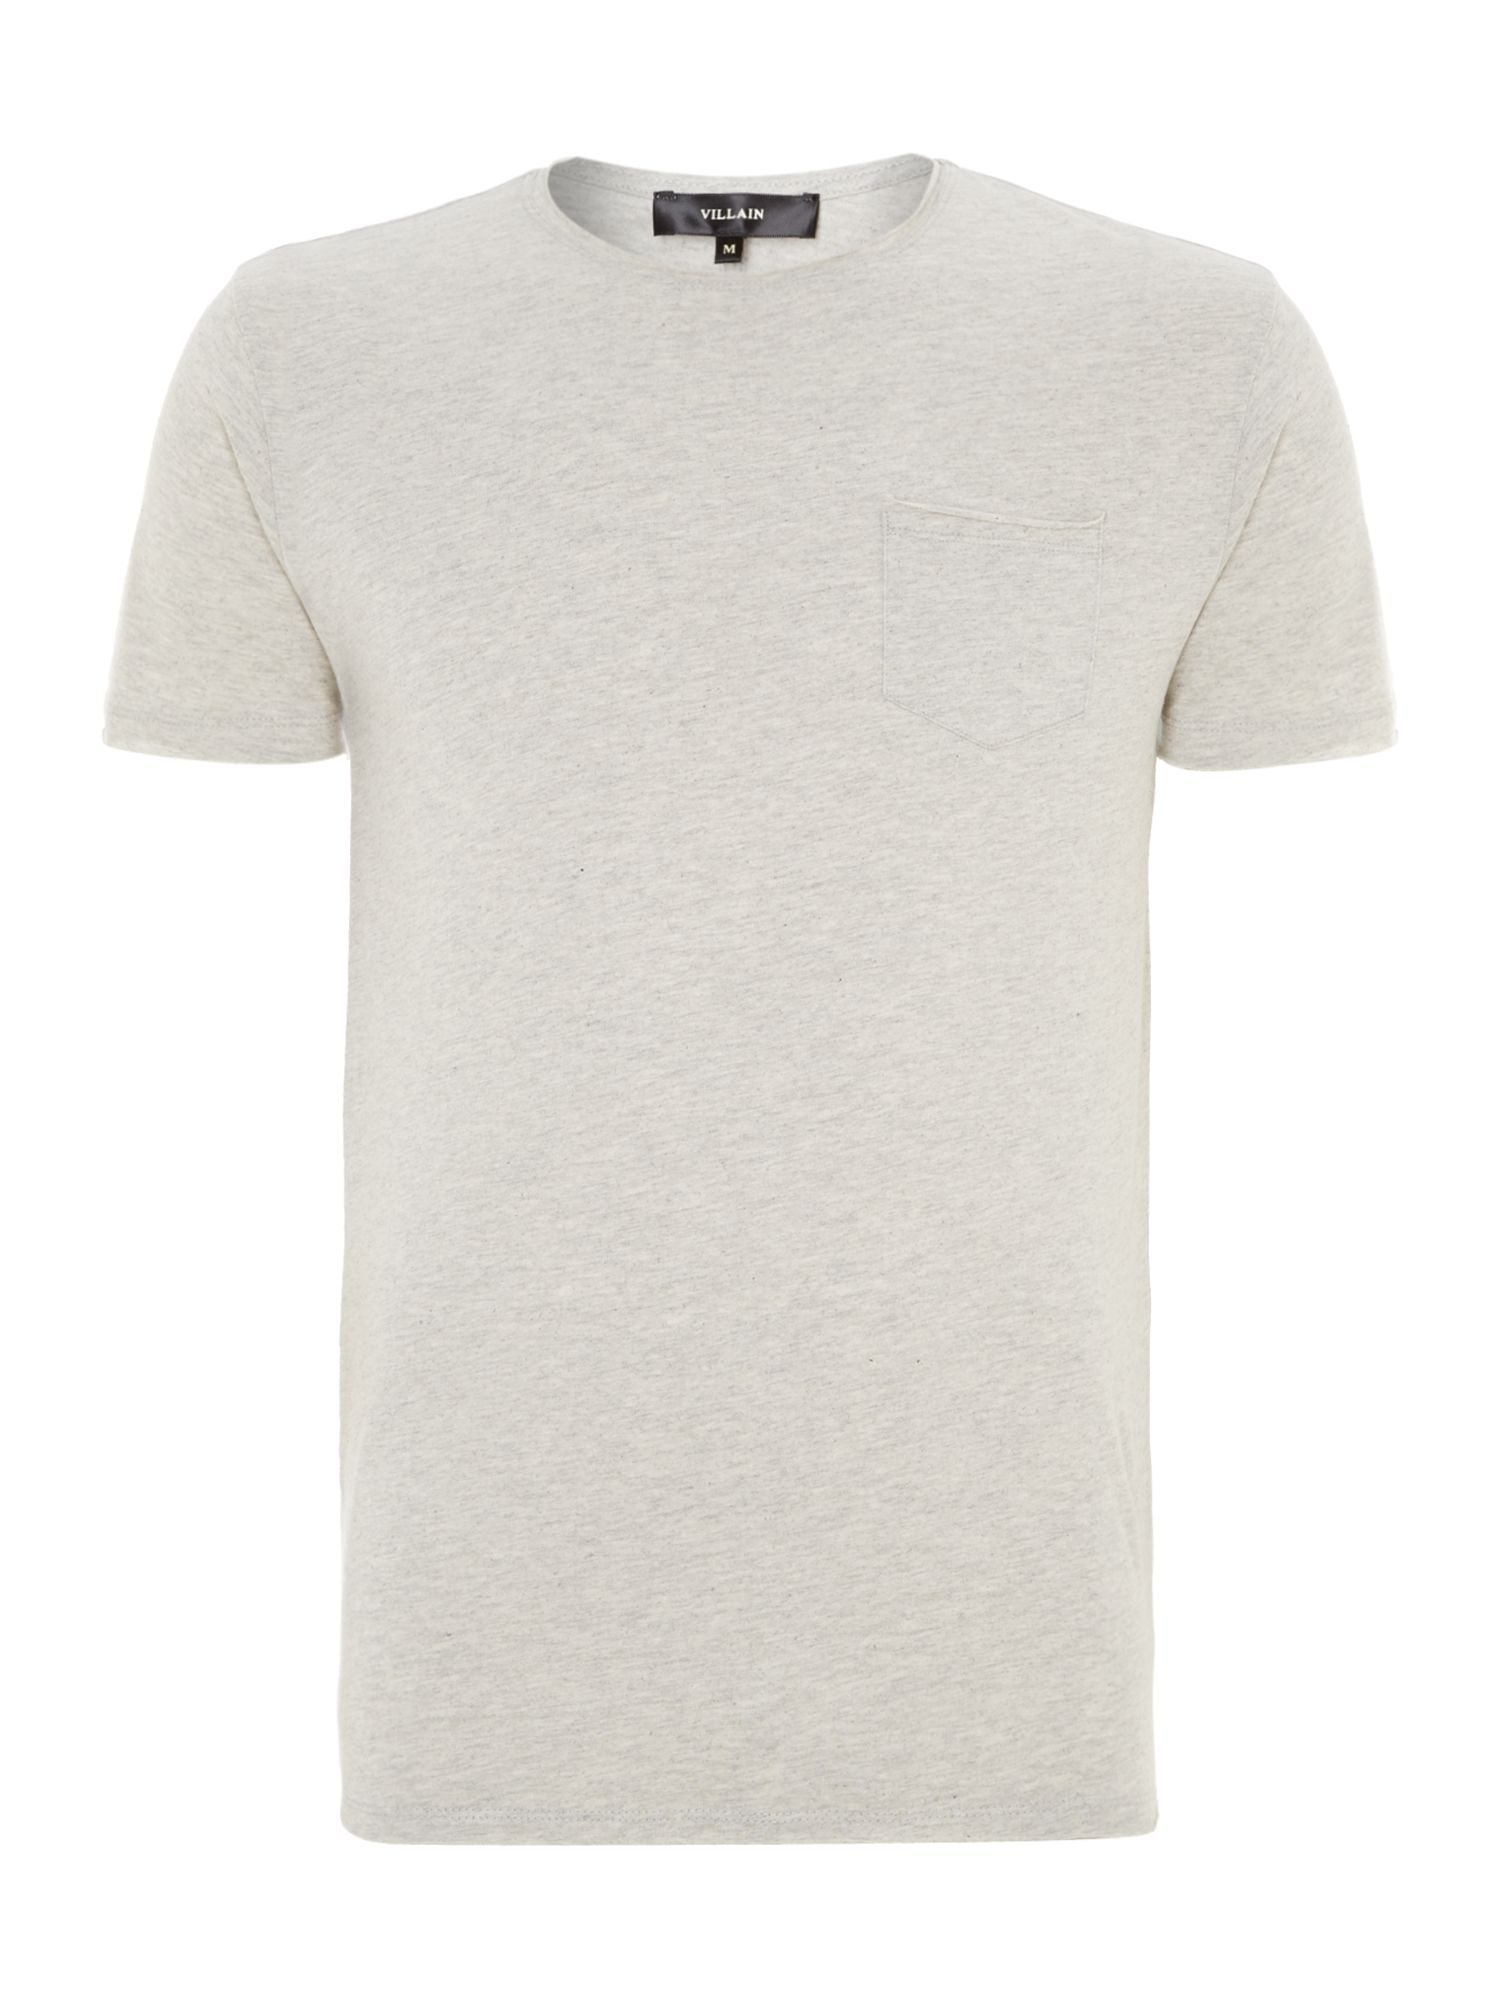 Crew neck basic t shirt